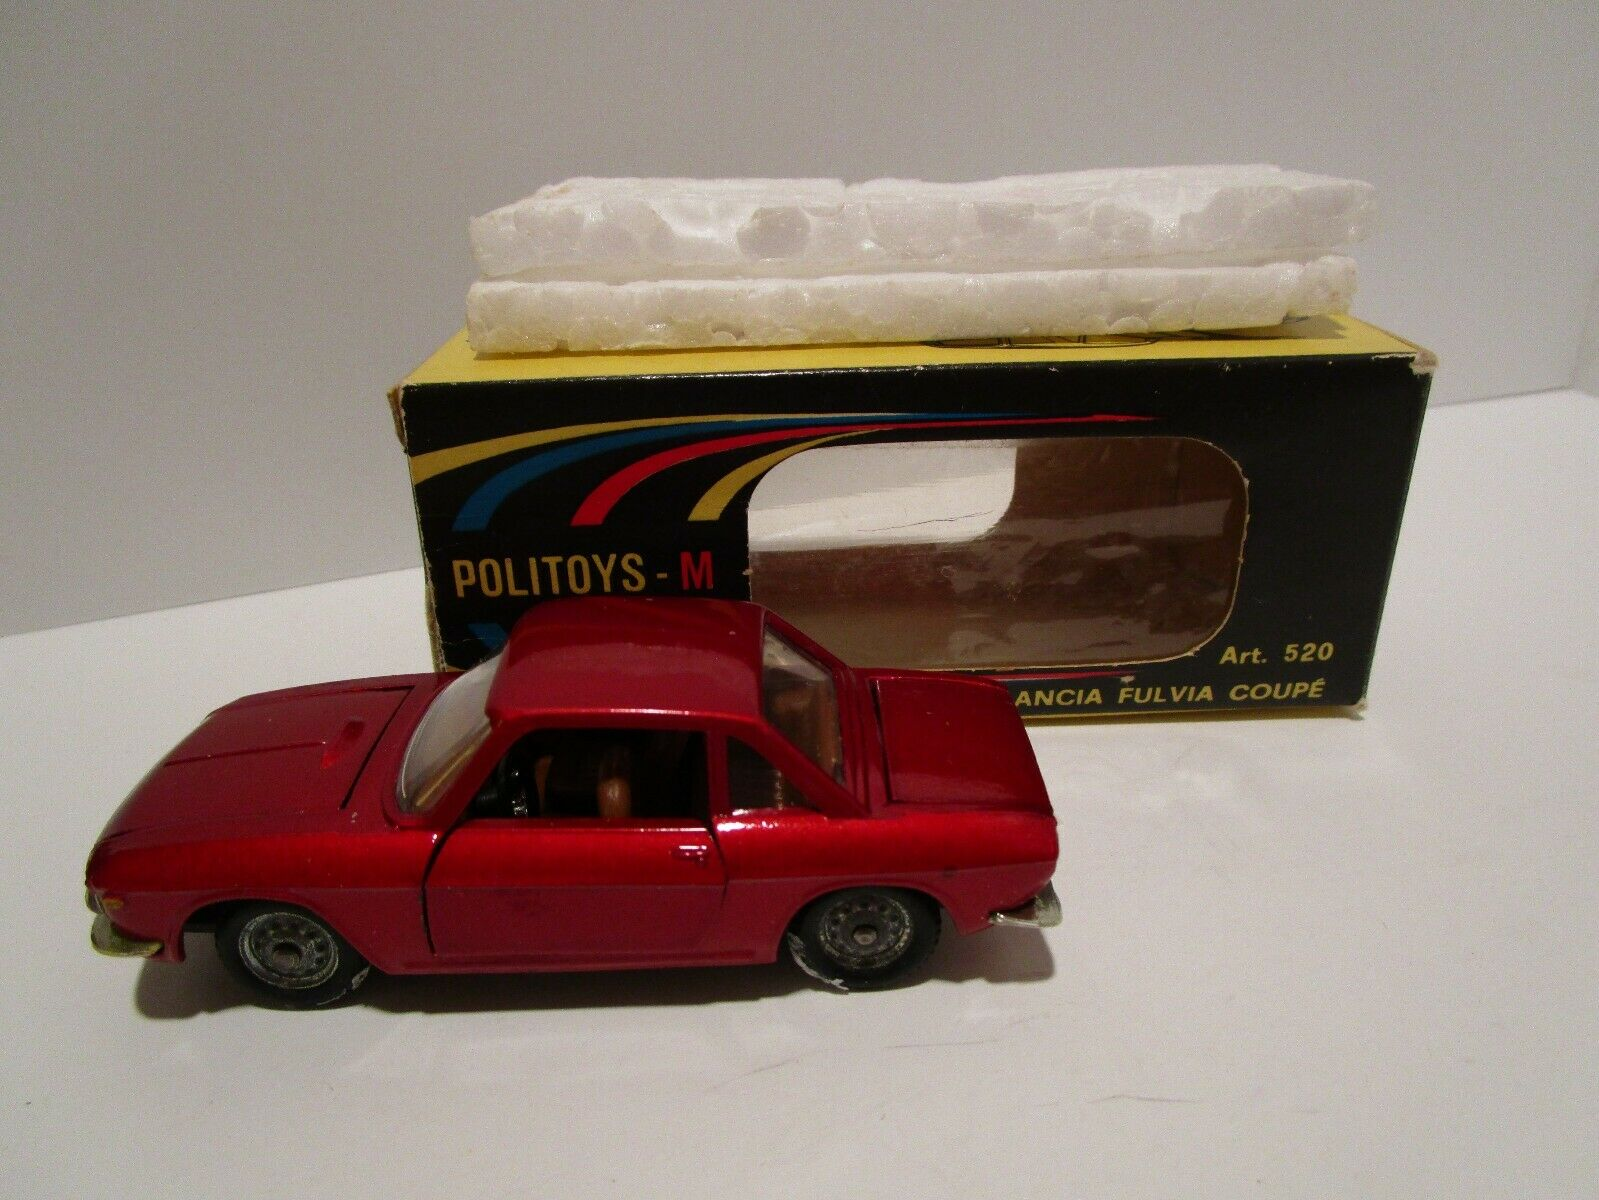 Vintage - 1 43 Politoys - Lancia Fulvia Coupe -  520 - Red - Box - Made in